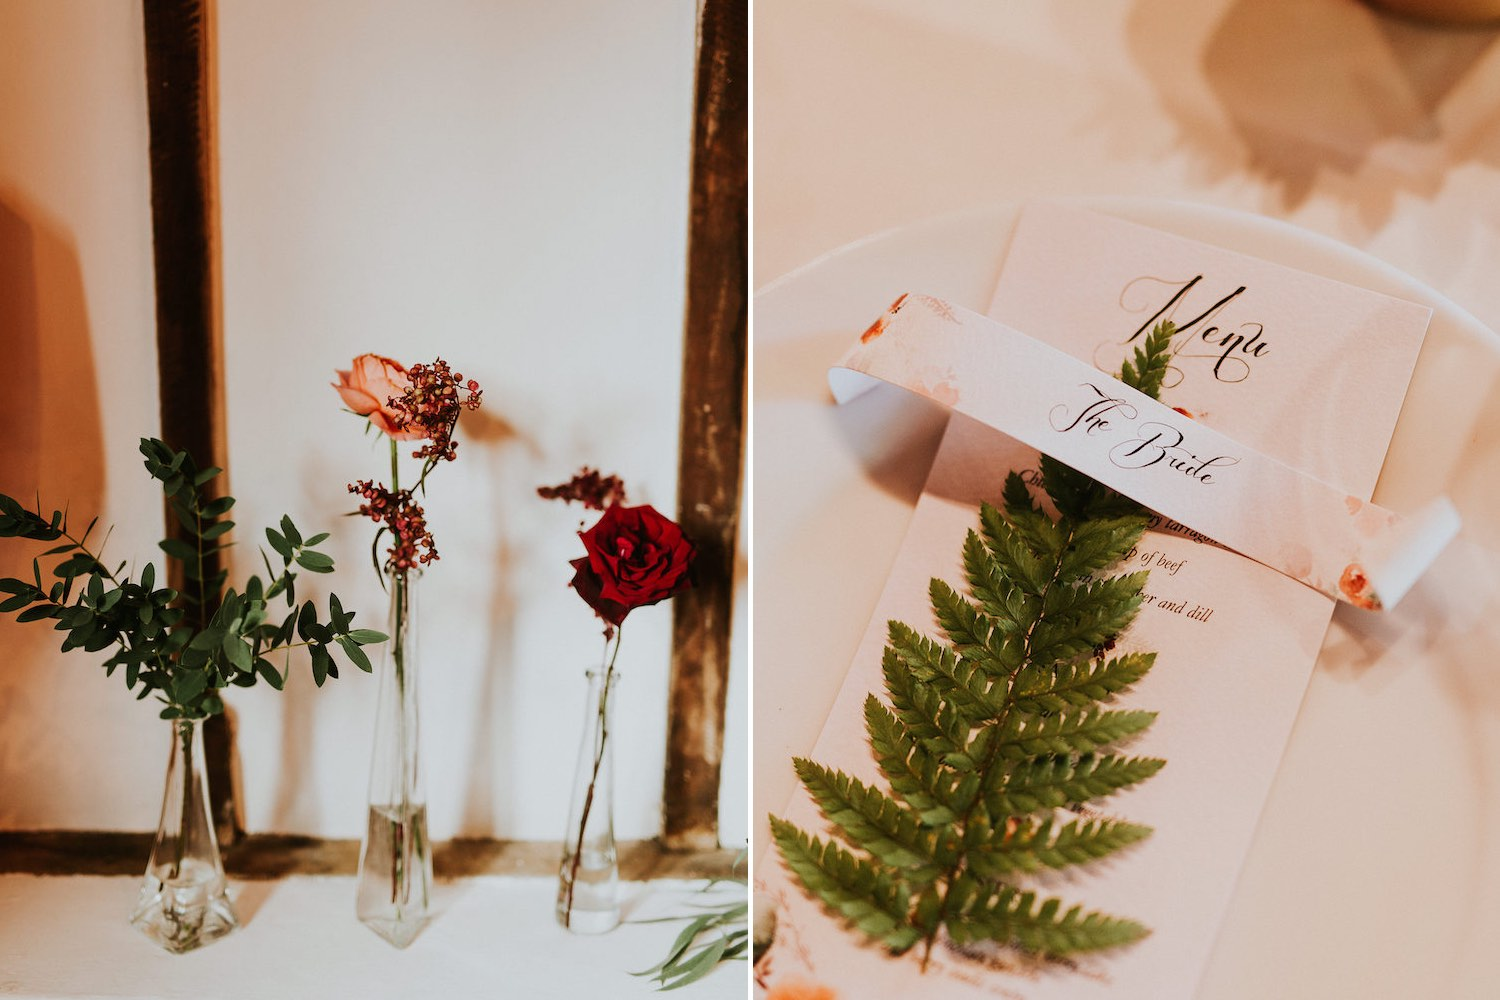 Flowers in vases and fern table setting